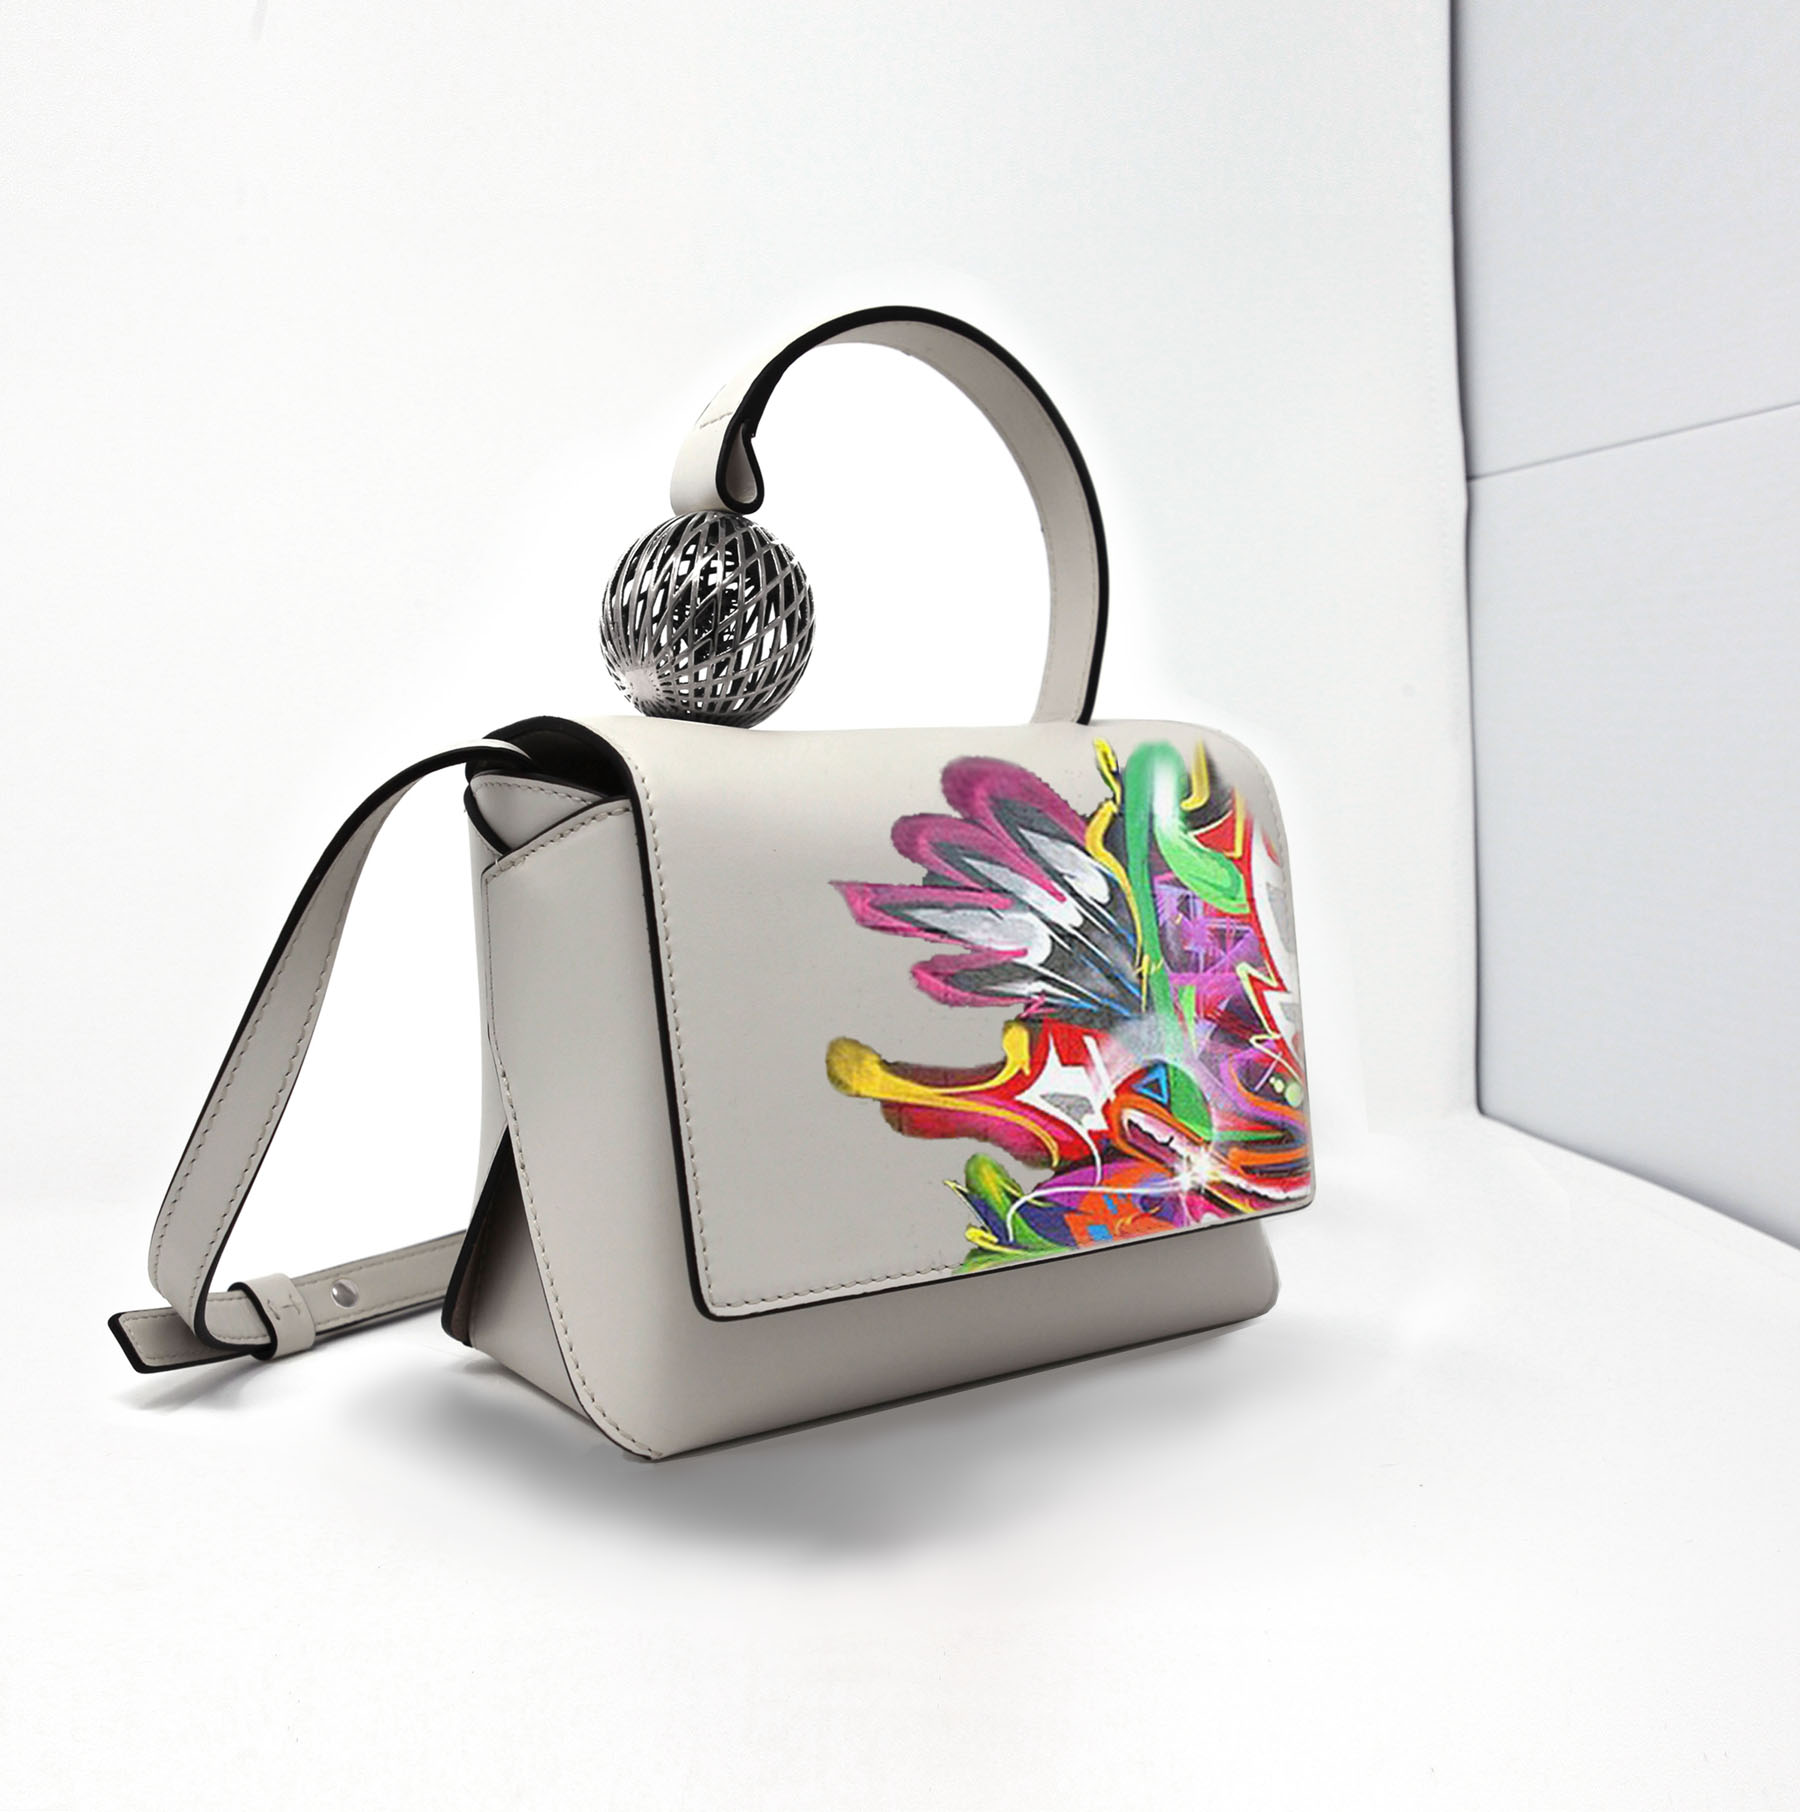 HandBags 10 - Maissa by Giulia Ber Tacchini Italian Custom Jewels and Luxury